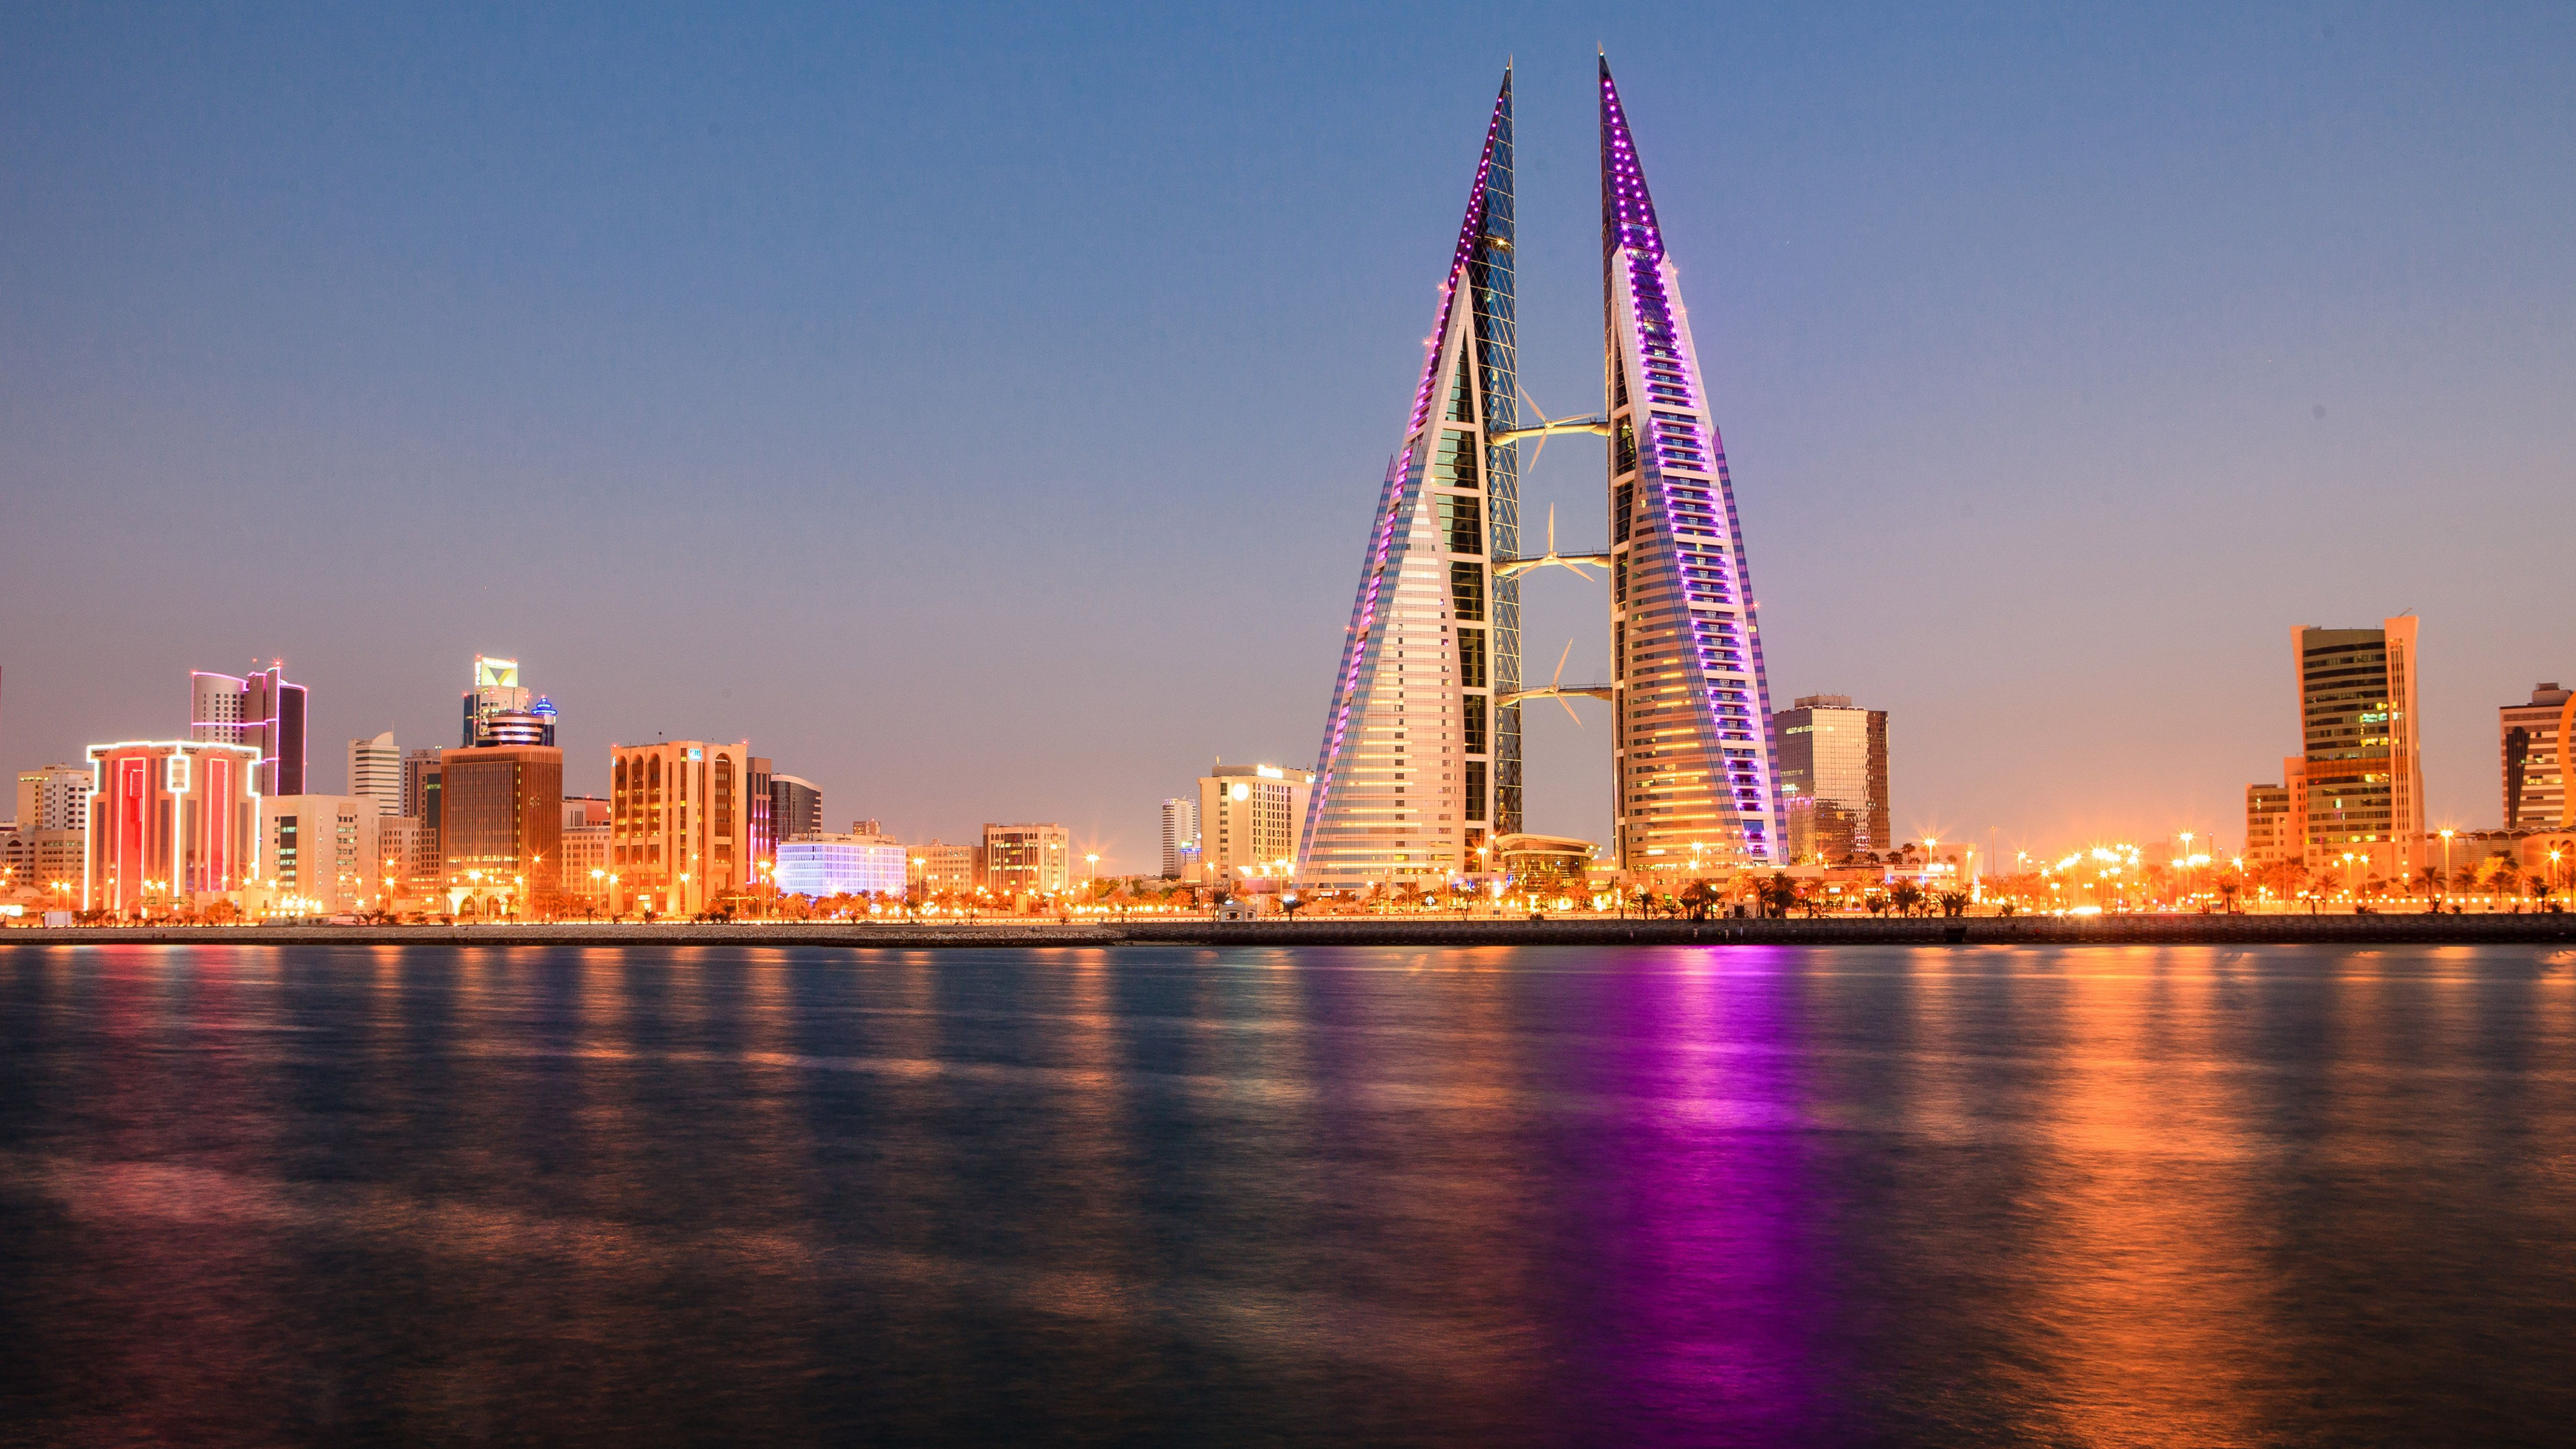 1 Bahrain HD Wallpapers | Backgrounds - Wallpaper Abyss